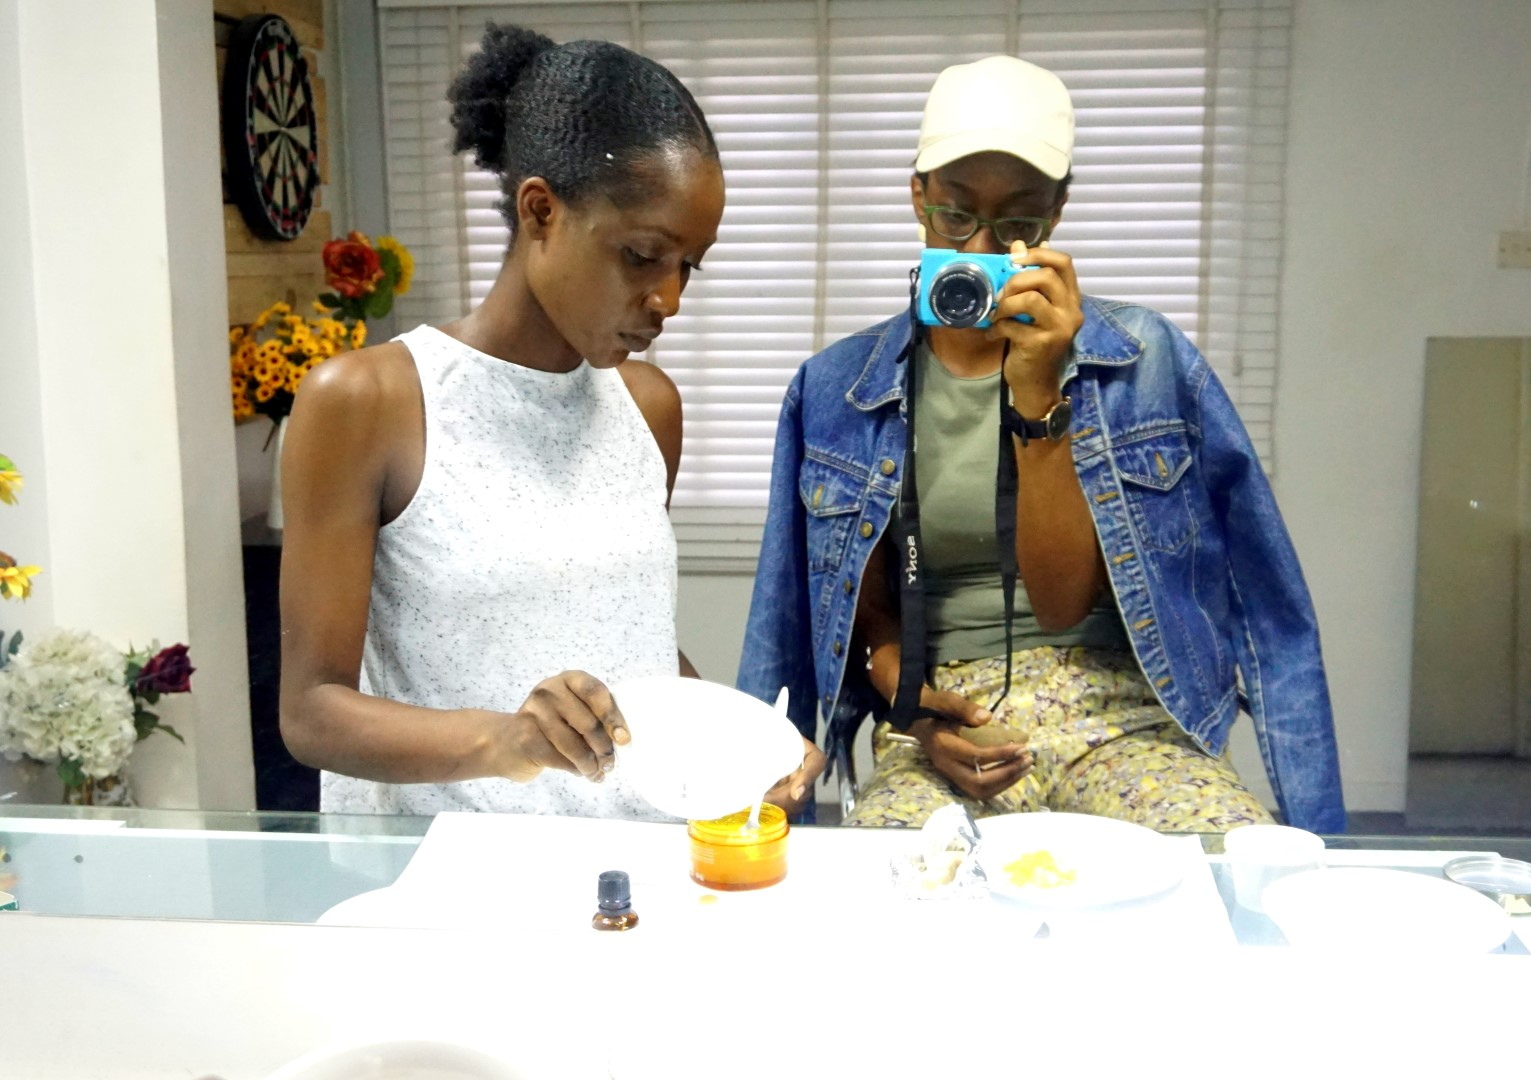 Makeup artist and beauty blogger Laila Came with fashion blogger Cassie Daves making homemade face mask and scrub